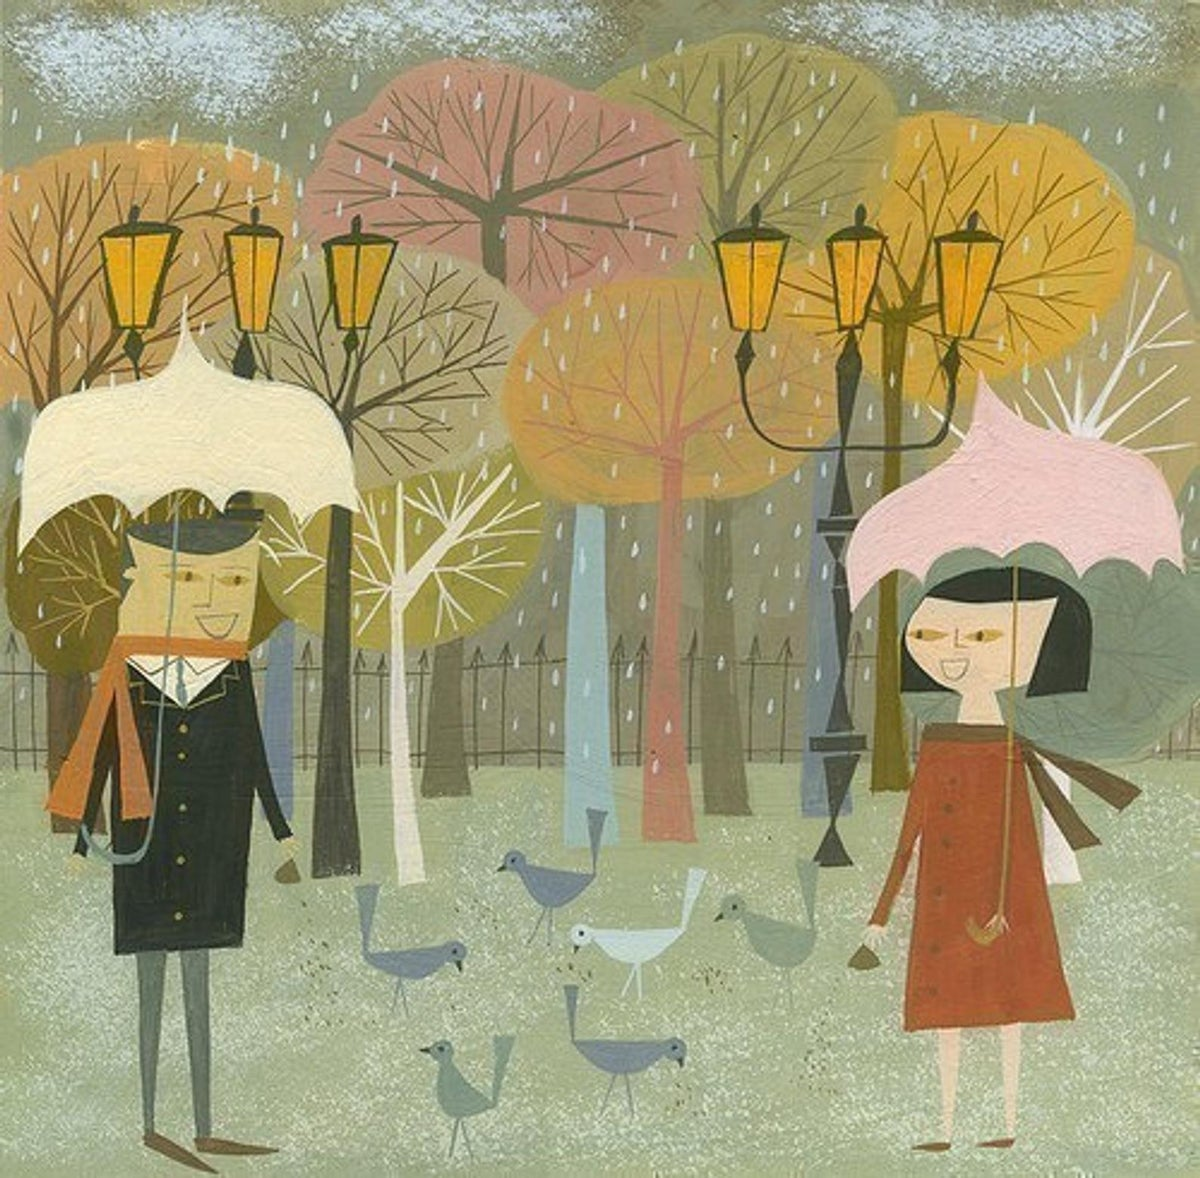 Image of Meeting to feed birds. Limited edition print.